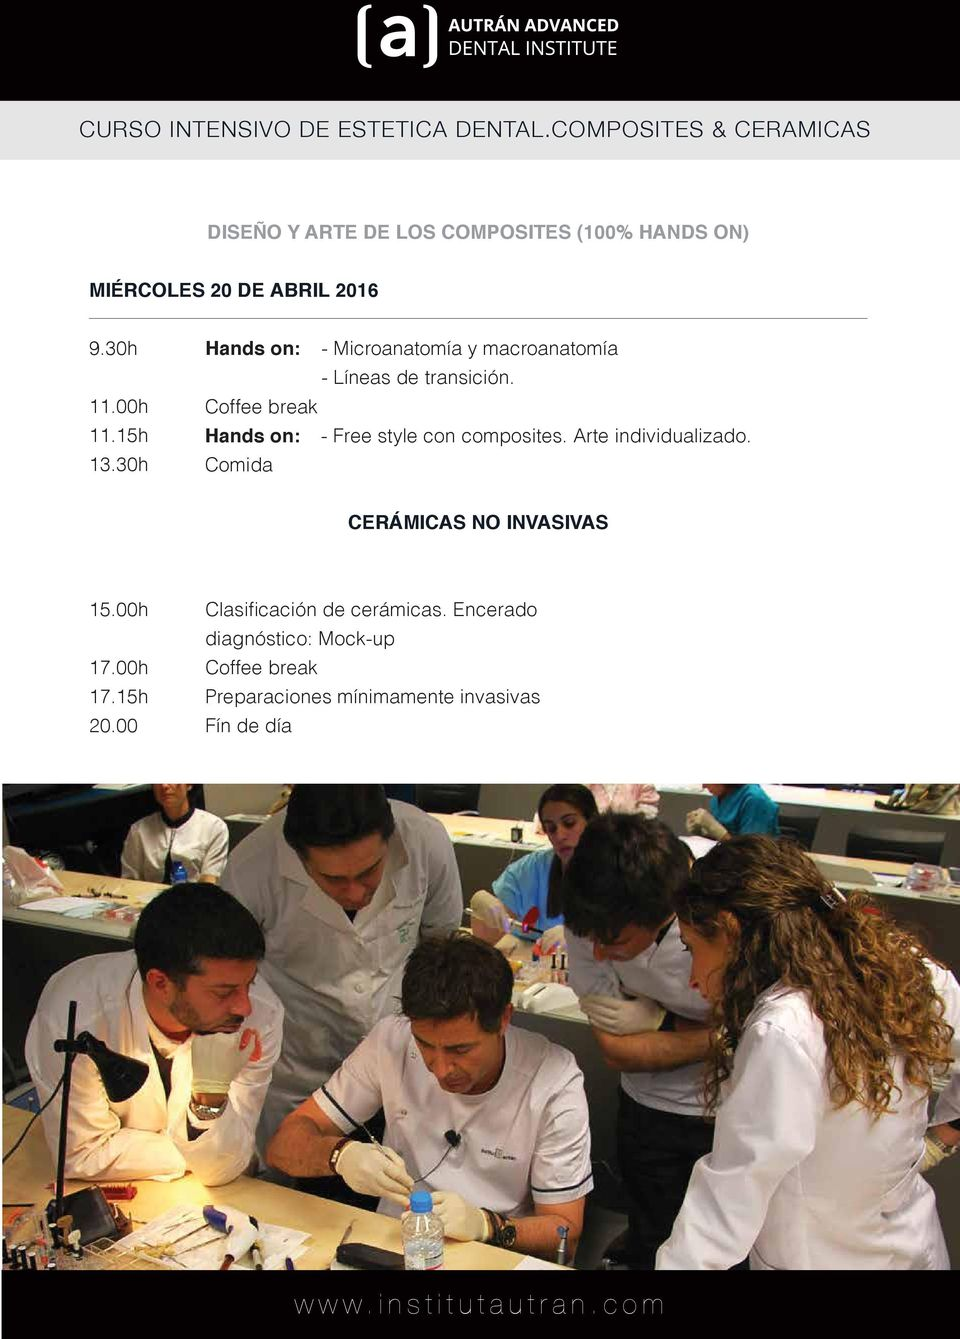 15h Hands on: - Free style con composites. Arte individualizado. 13.